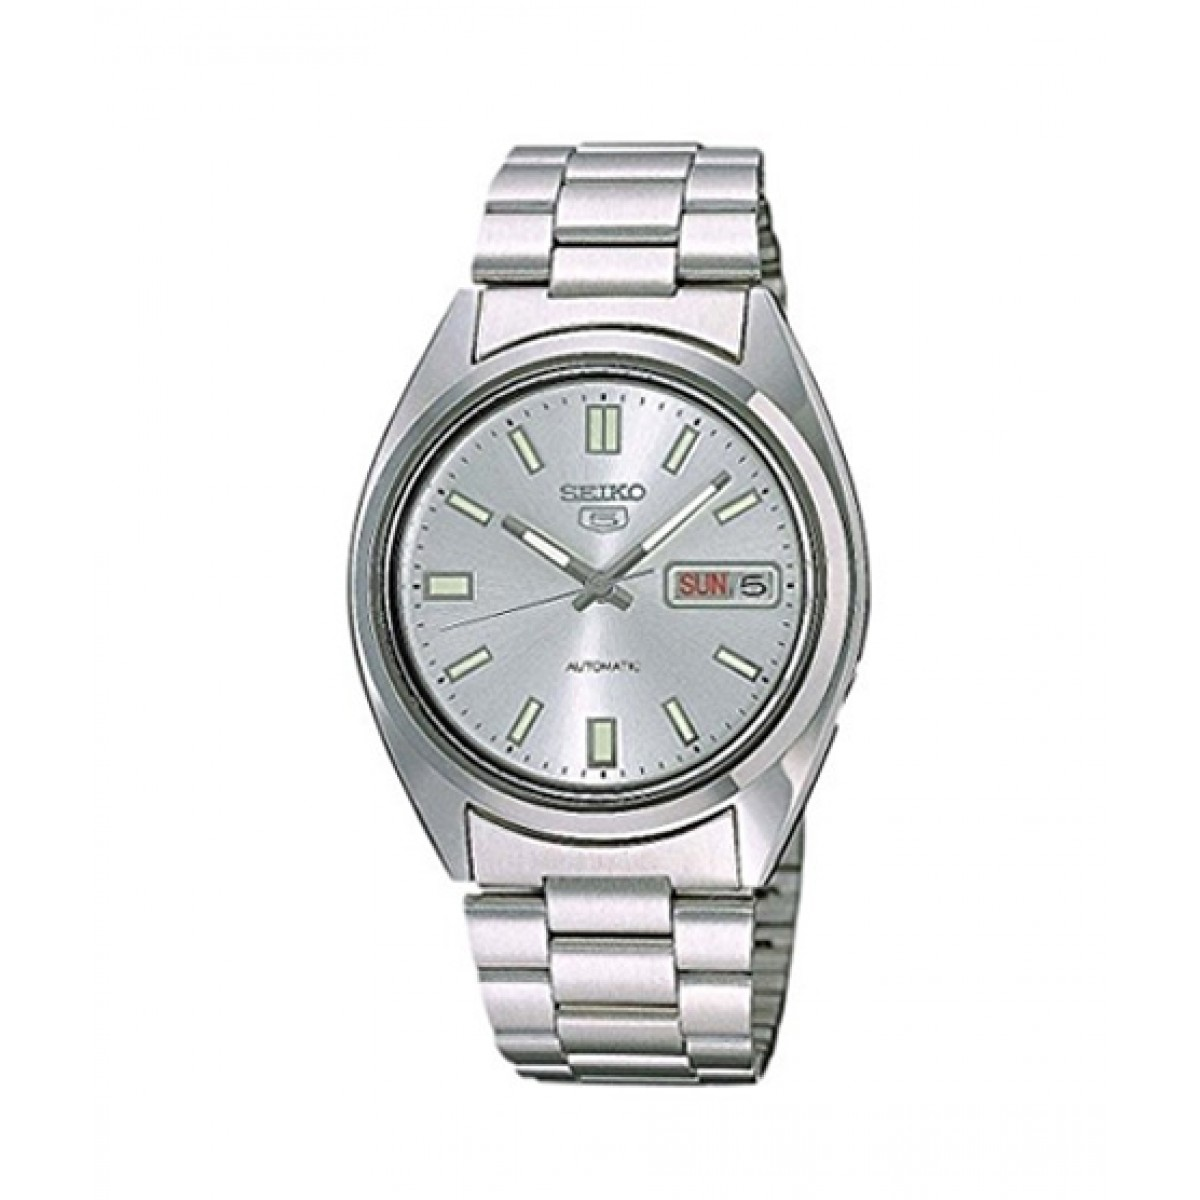 2ebee961b Seiko 5 Men's Watch Price in Pakistan | Buy Seiko Men's Watch Silver  (SNXS73K) | iShopping.pk